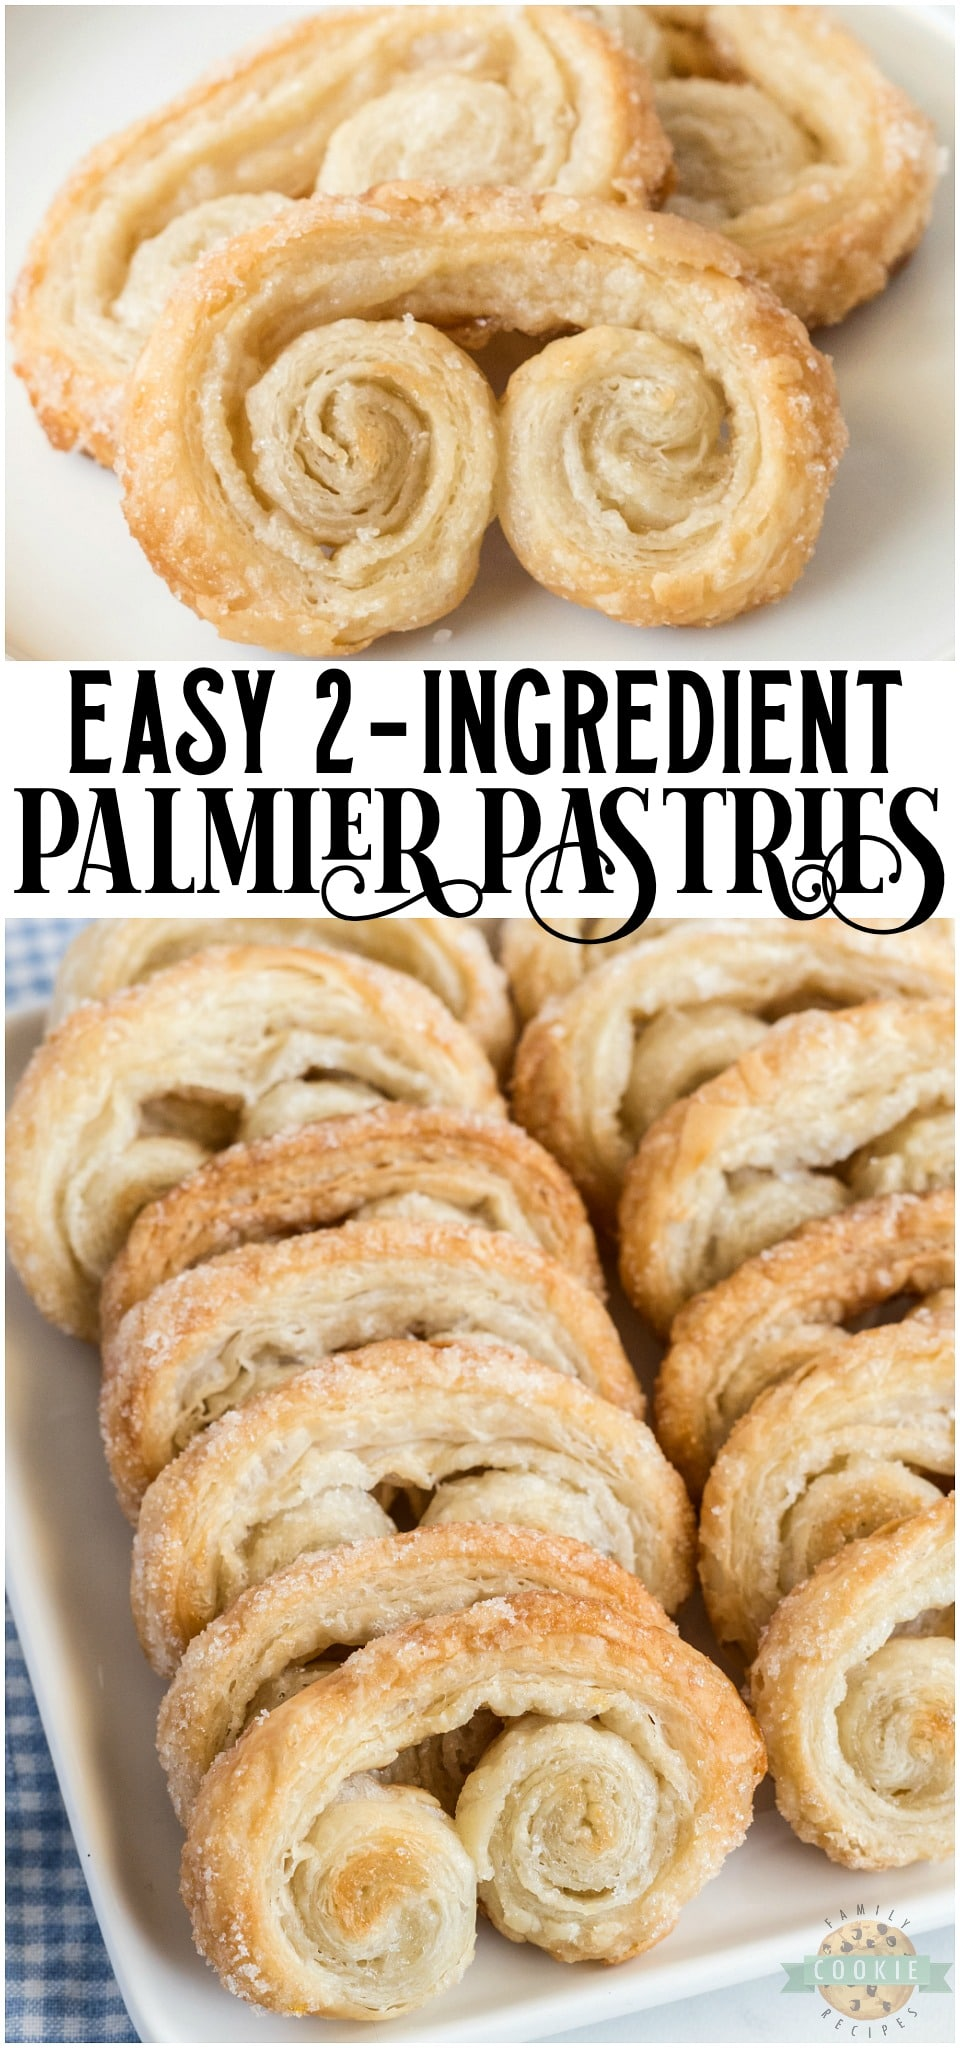 Easy Palmiers recipe made with just 2 ingredients: puff pastry and sugar! Enjoy buttery, flaky homemade Palmiers in just 30 minutes! Anyone can make these fancy looking cookies!